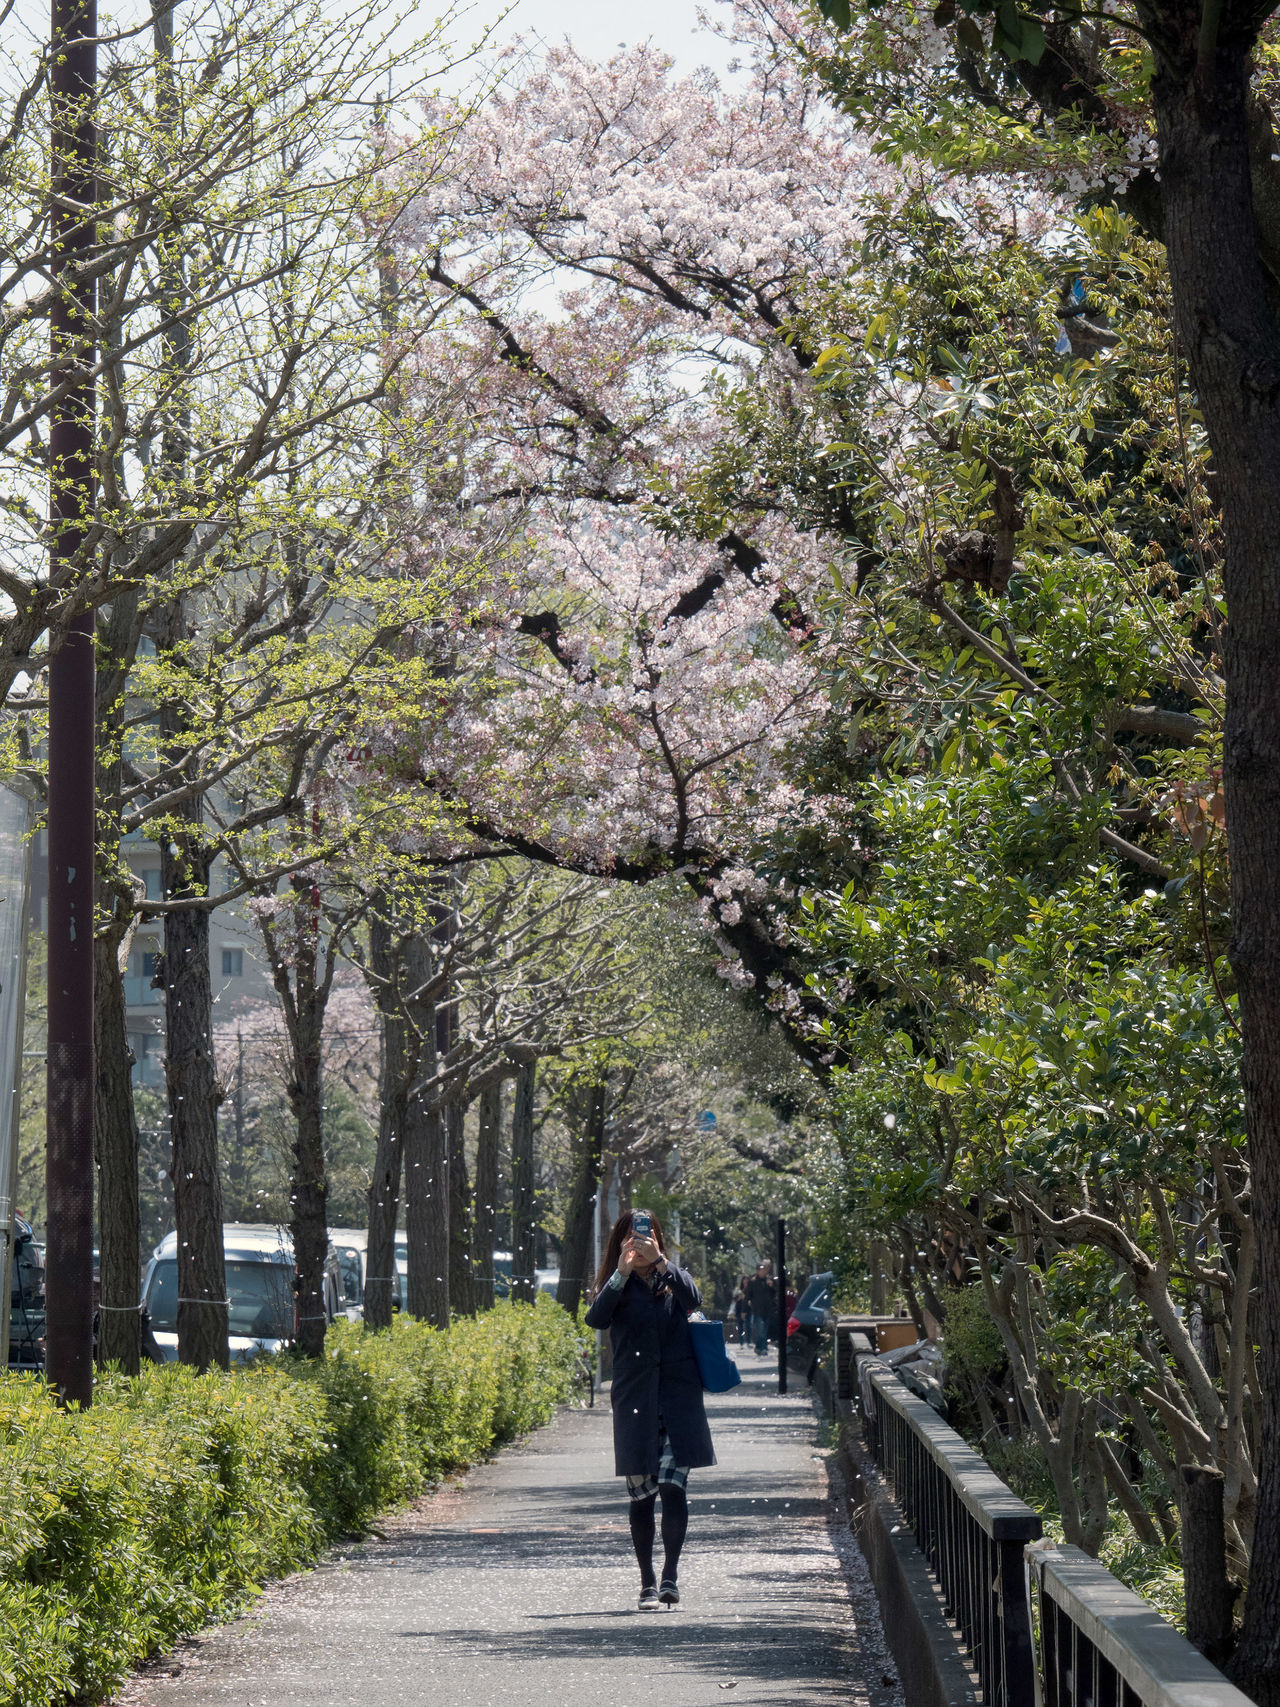 Cherry Blossoms Cherry Tree Chrerryblossom Day Flower Nature People Spring Flowers Springtime Taking Photos Tree Walking Watching CityWalk Flower Collection Snapshot Streetphotography On The Road Yoyogi 代々木 Tokyo Japan The Street Photographer - 2017 EyeEm Awards